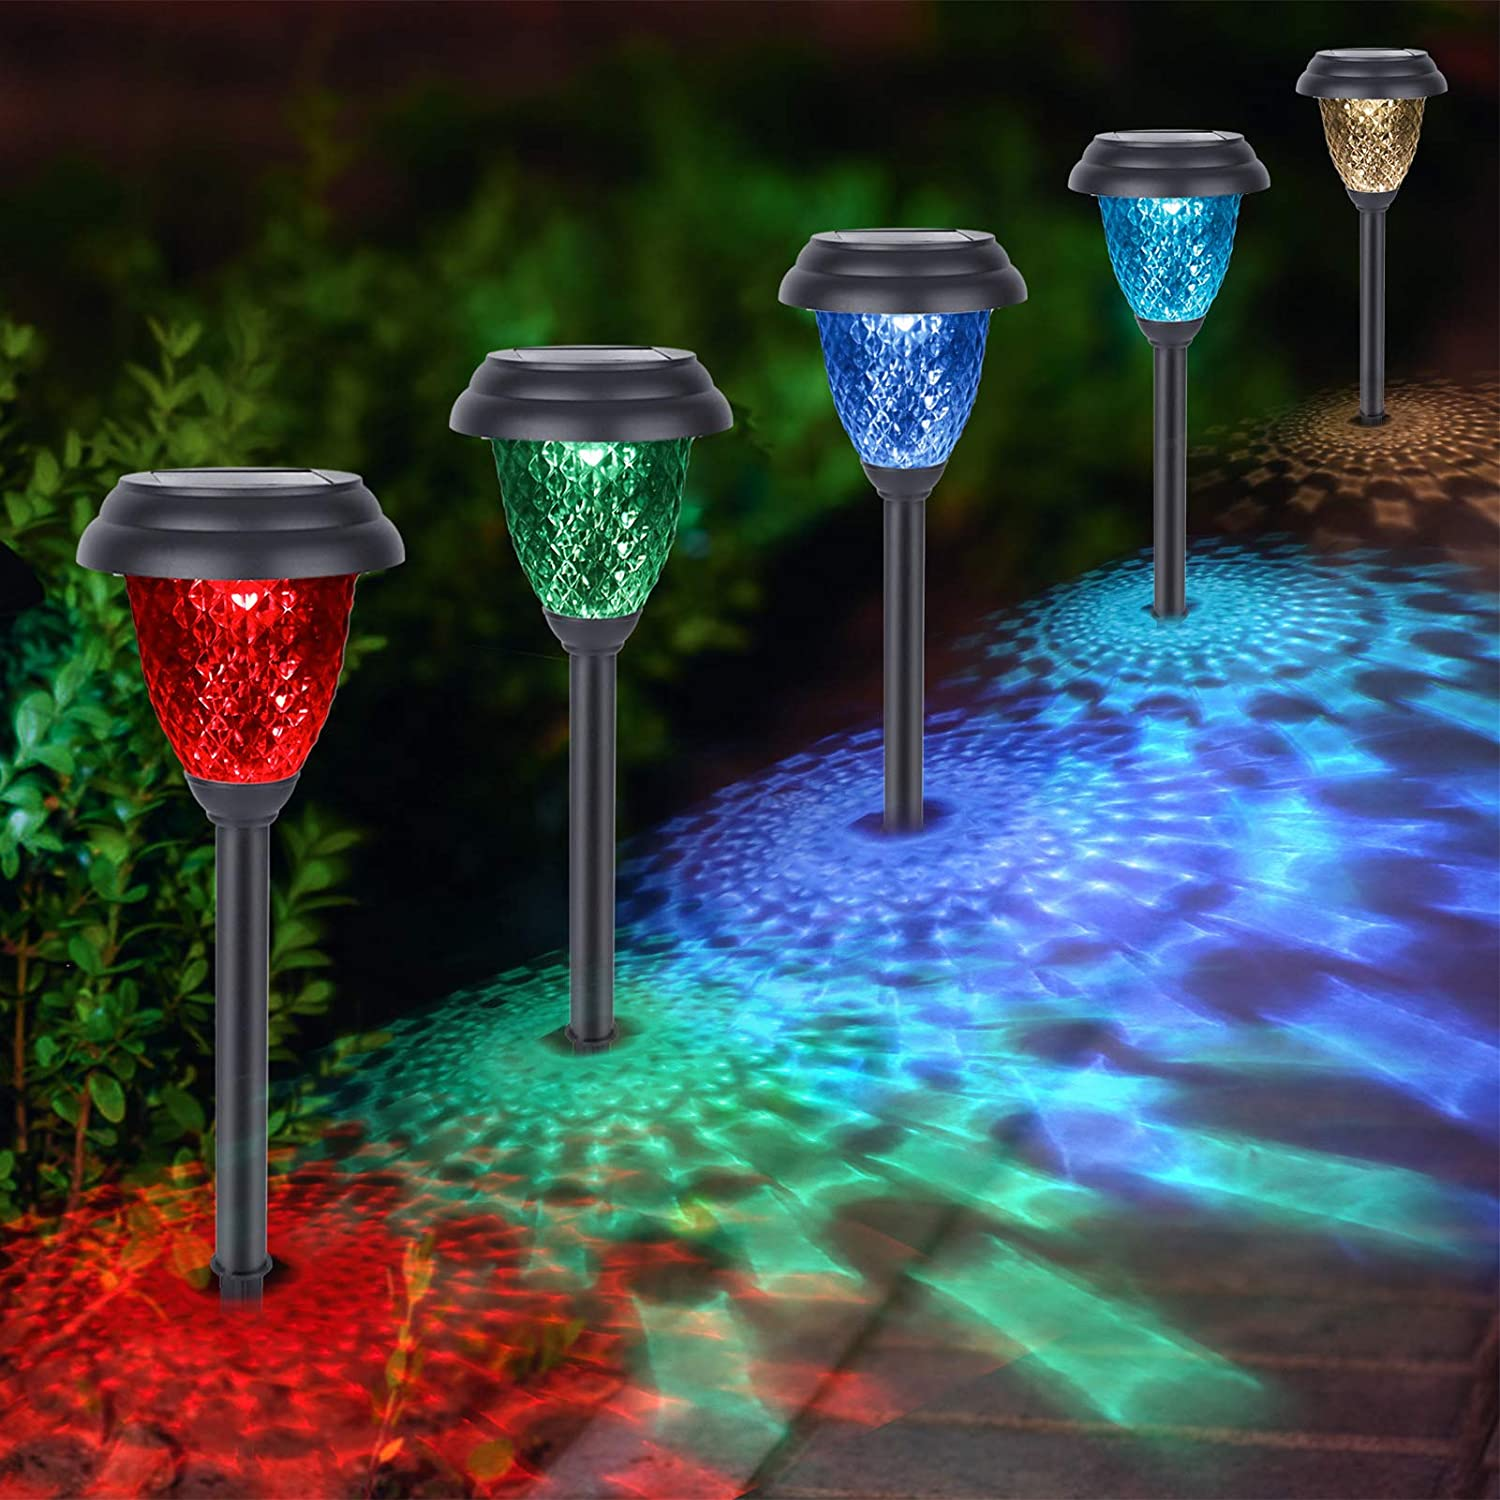 Solar Pathway Lights Outdoor, GEEKERA 8Pack Waterproof Solar Powered Garden Landscape Path Lights, Warm White/LED Color Changing Lighting Lawn Lamps Decor for Path, Yard, Walkway, Driveway Auto On/Off